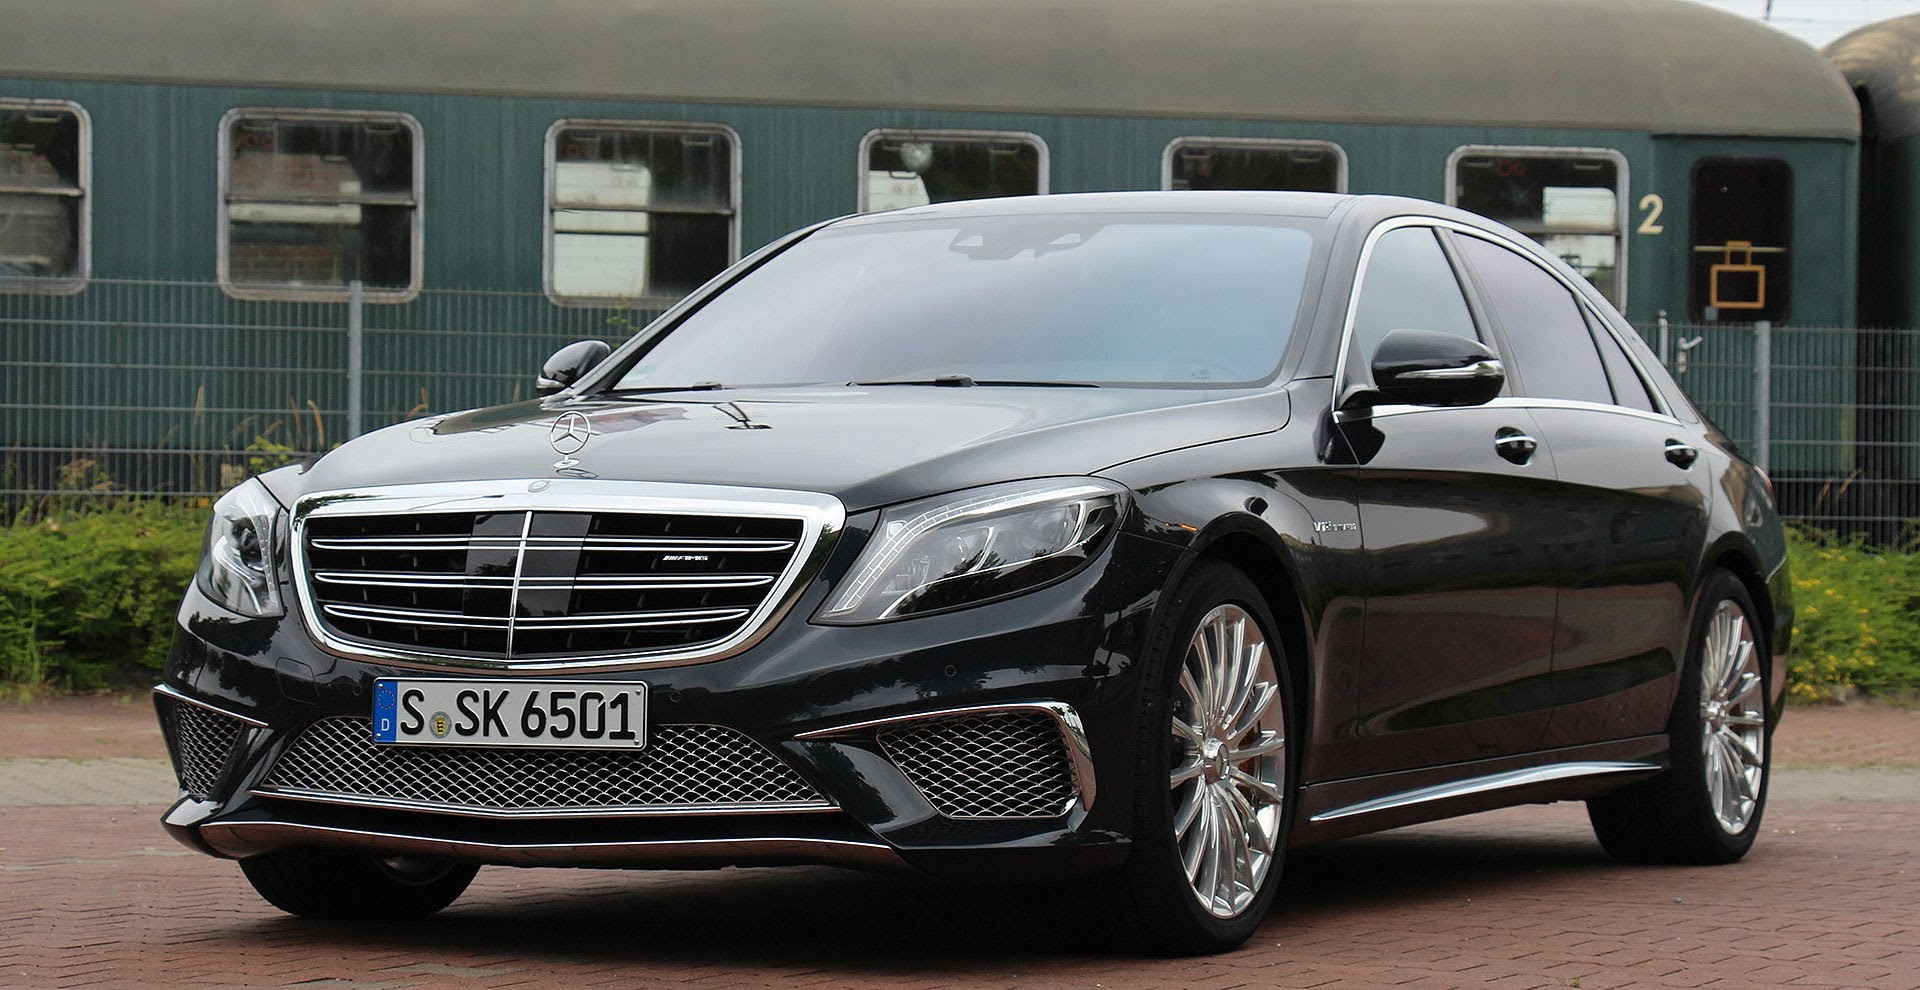 2014 Mercedes-Benz S65 AMG Backgrounds, Compatible - PC, Mobile, Gadgets| 1920x990 px